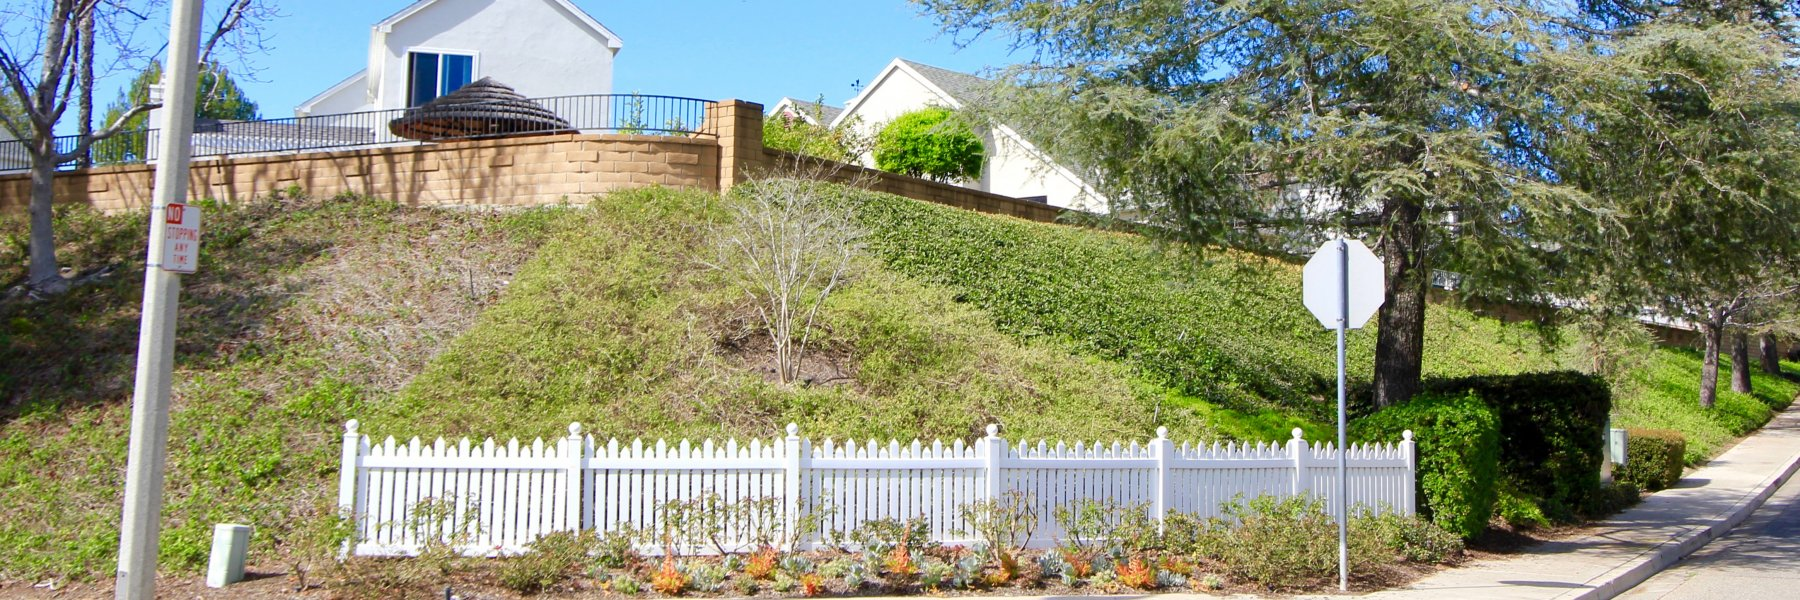 Galicia is a community of homes in Mission Viejo California